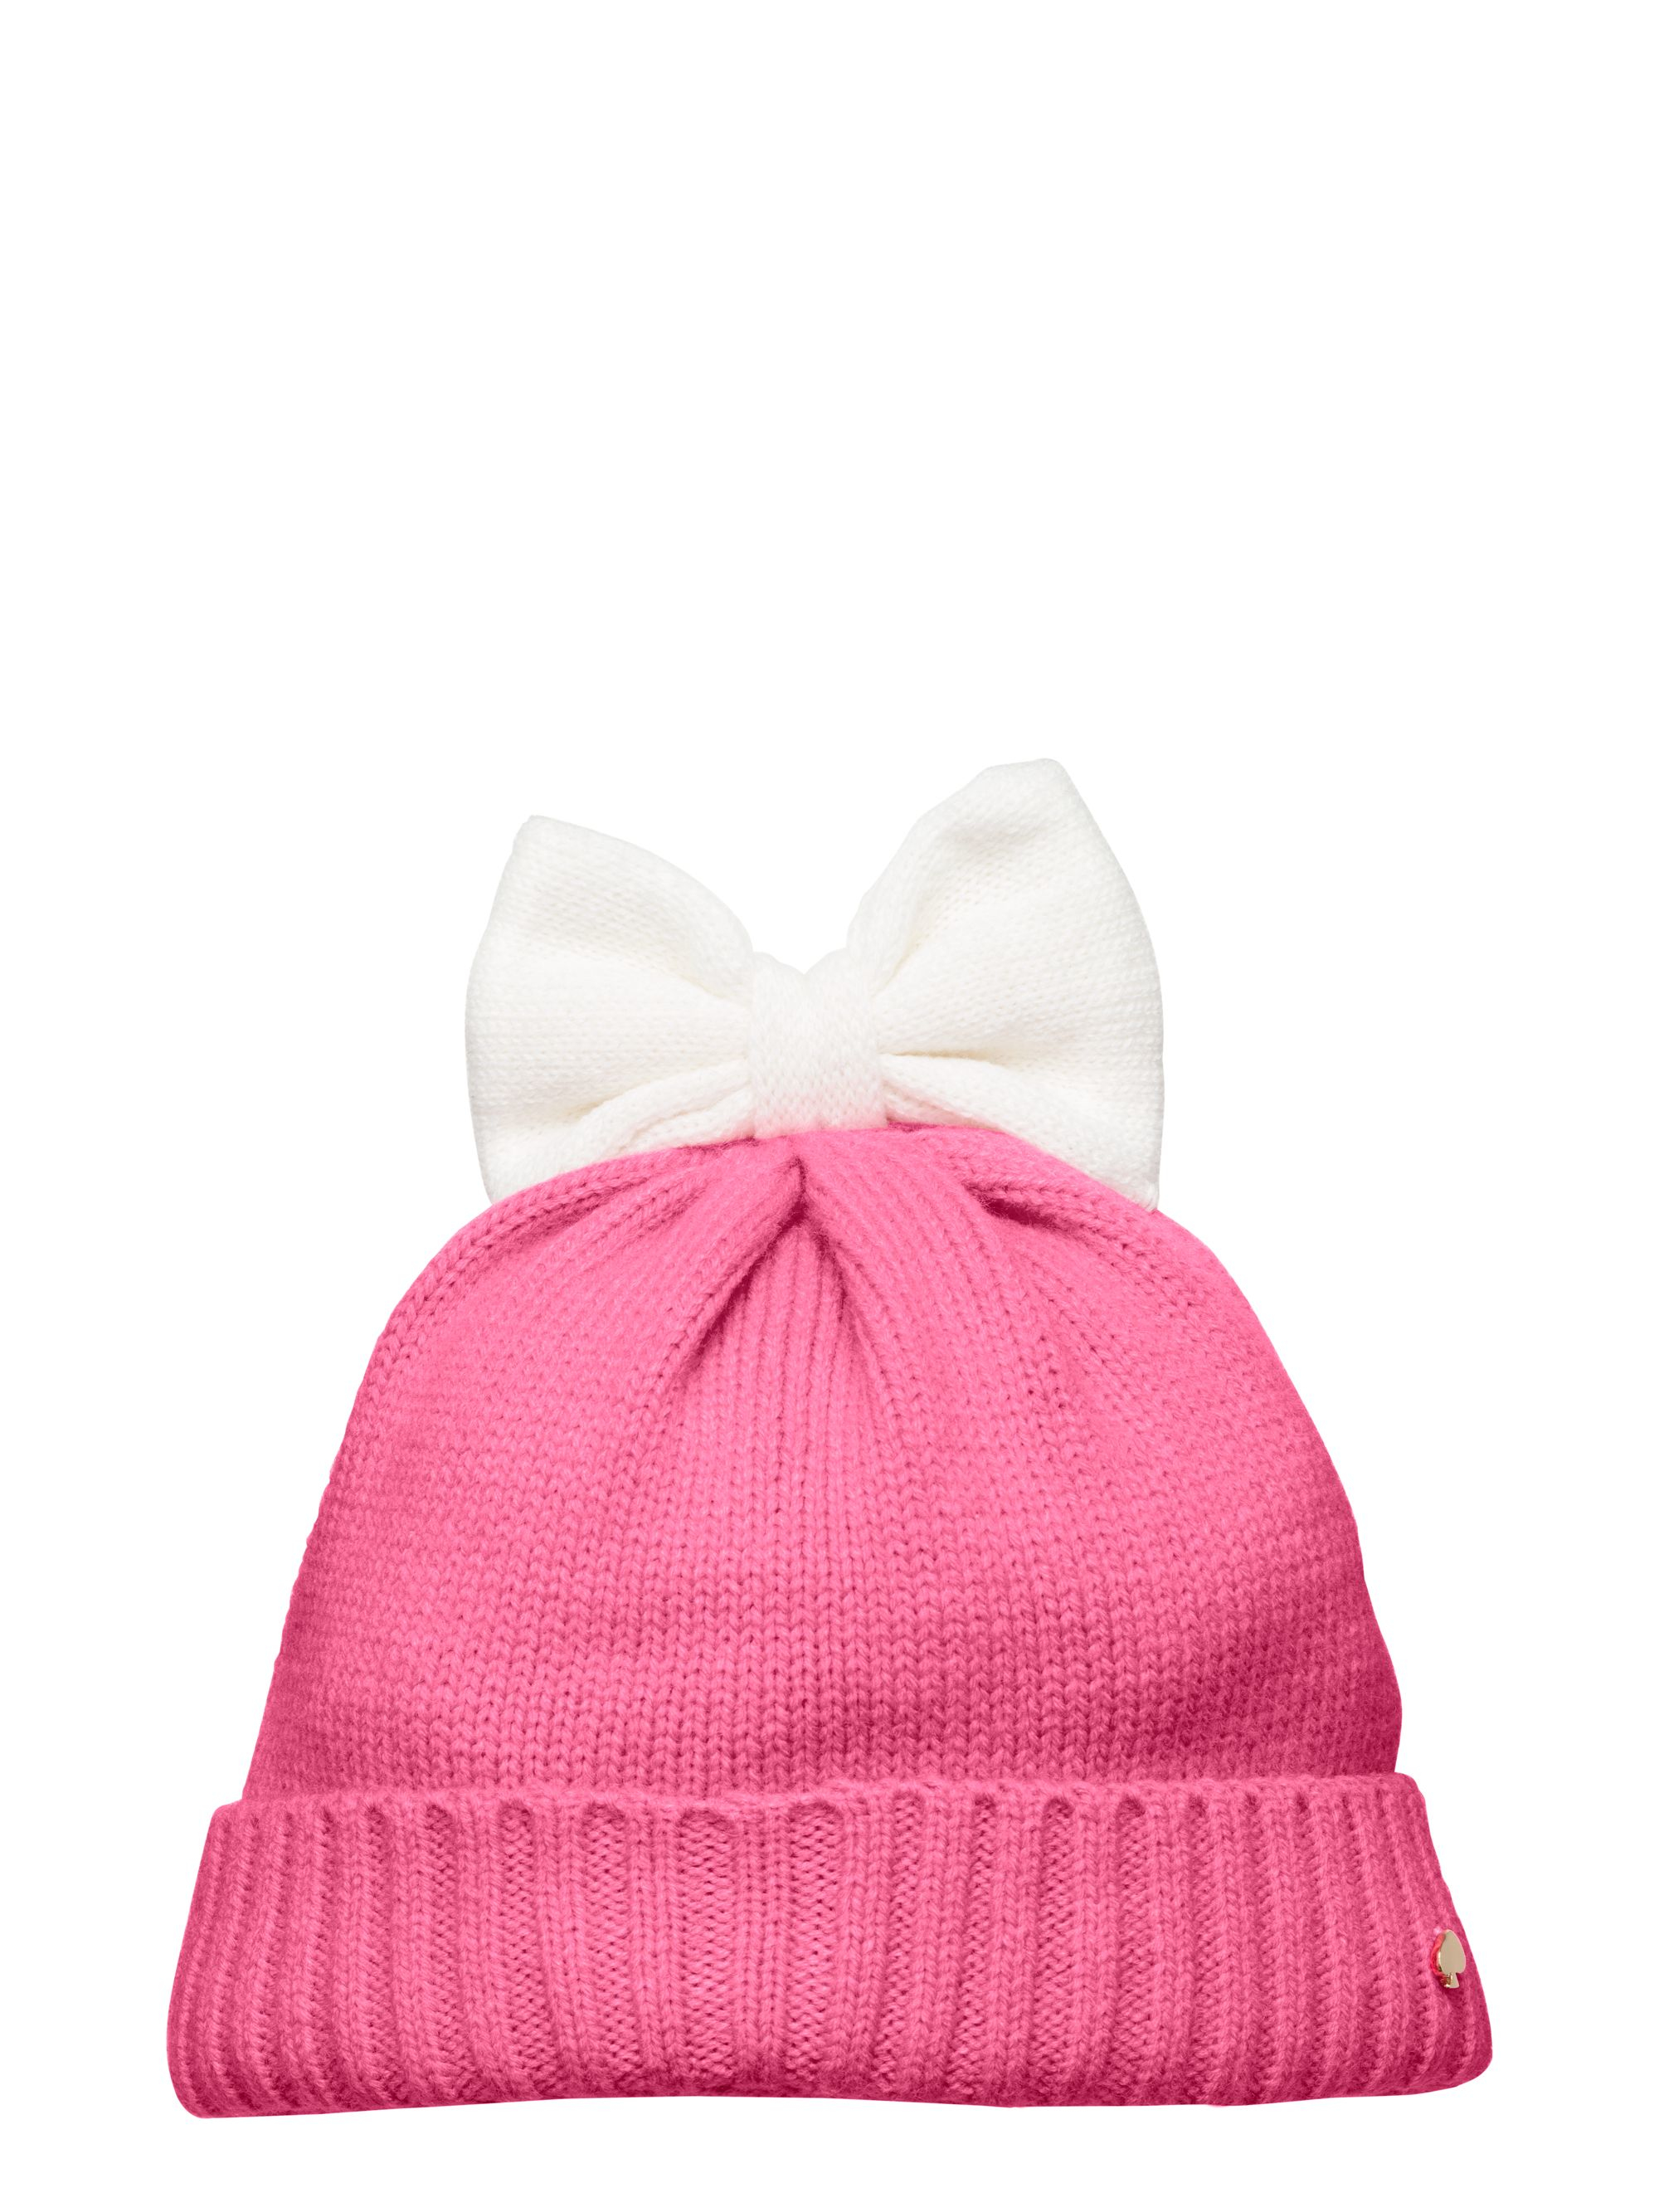 8a1674dc201b0 Kate Spade Colorblock Bow Hat in Pink - Lyst